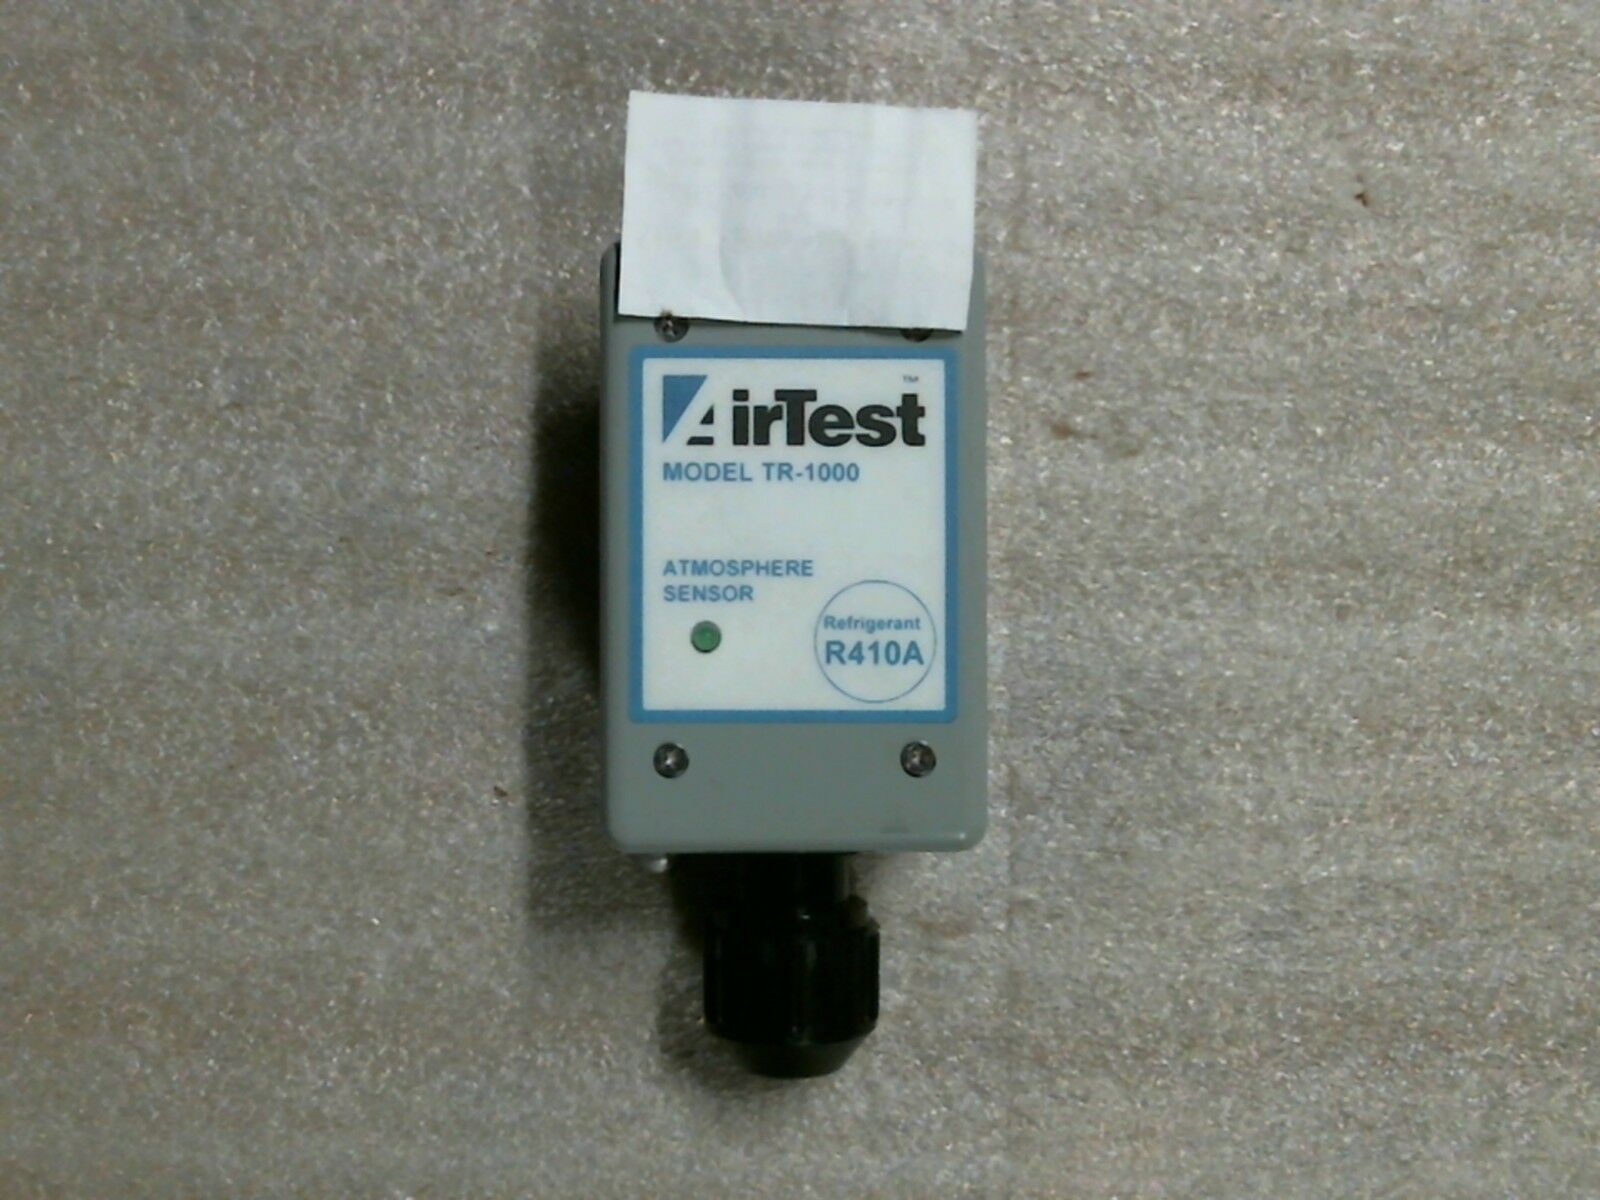 AirTest TR1000-FC Flugoldcarbons Atmosphere Sensor 24VAC 200mA - 60 day warranty